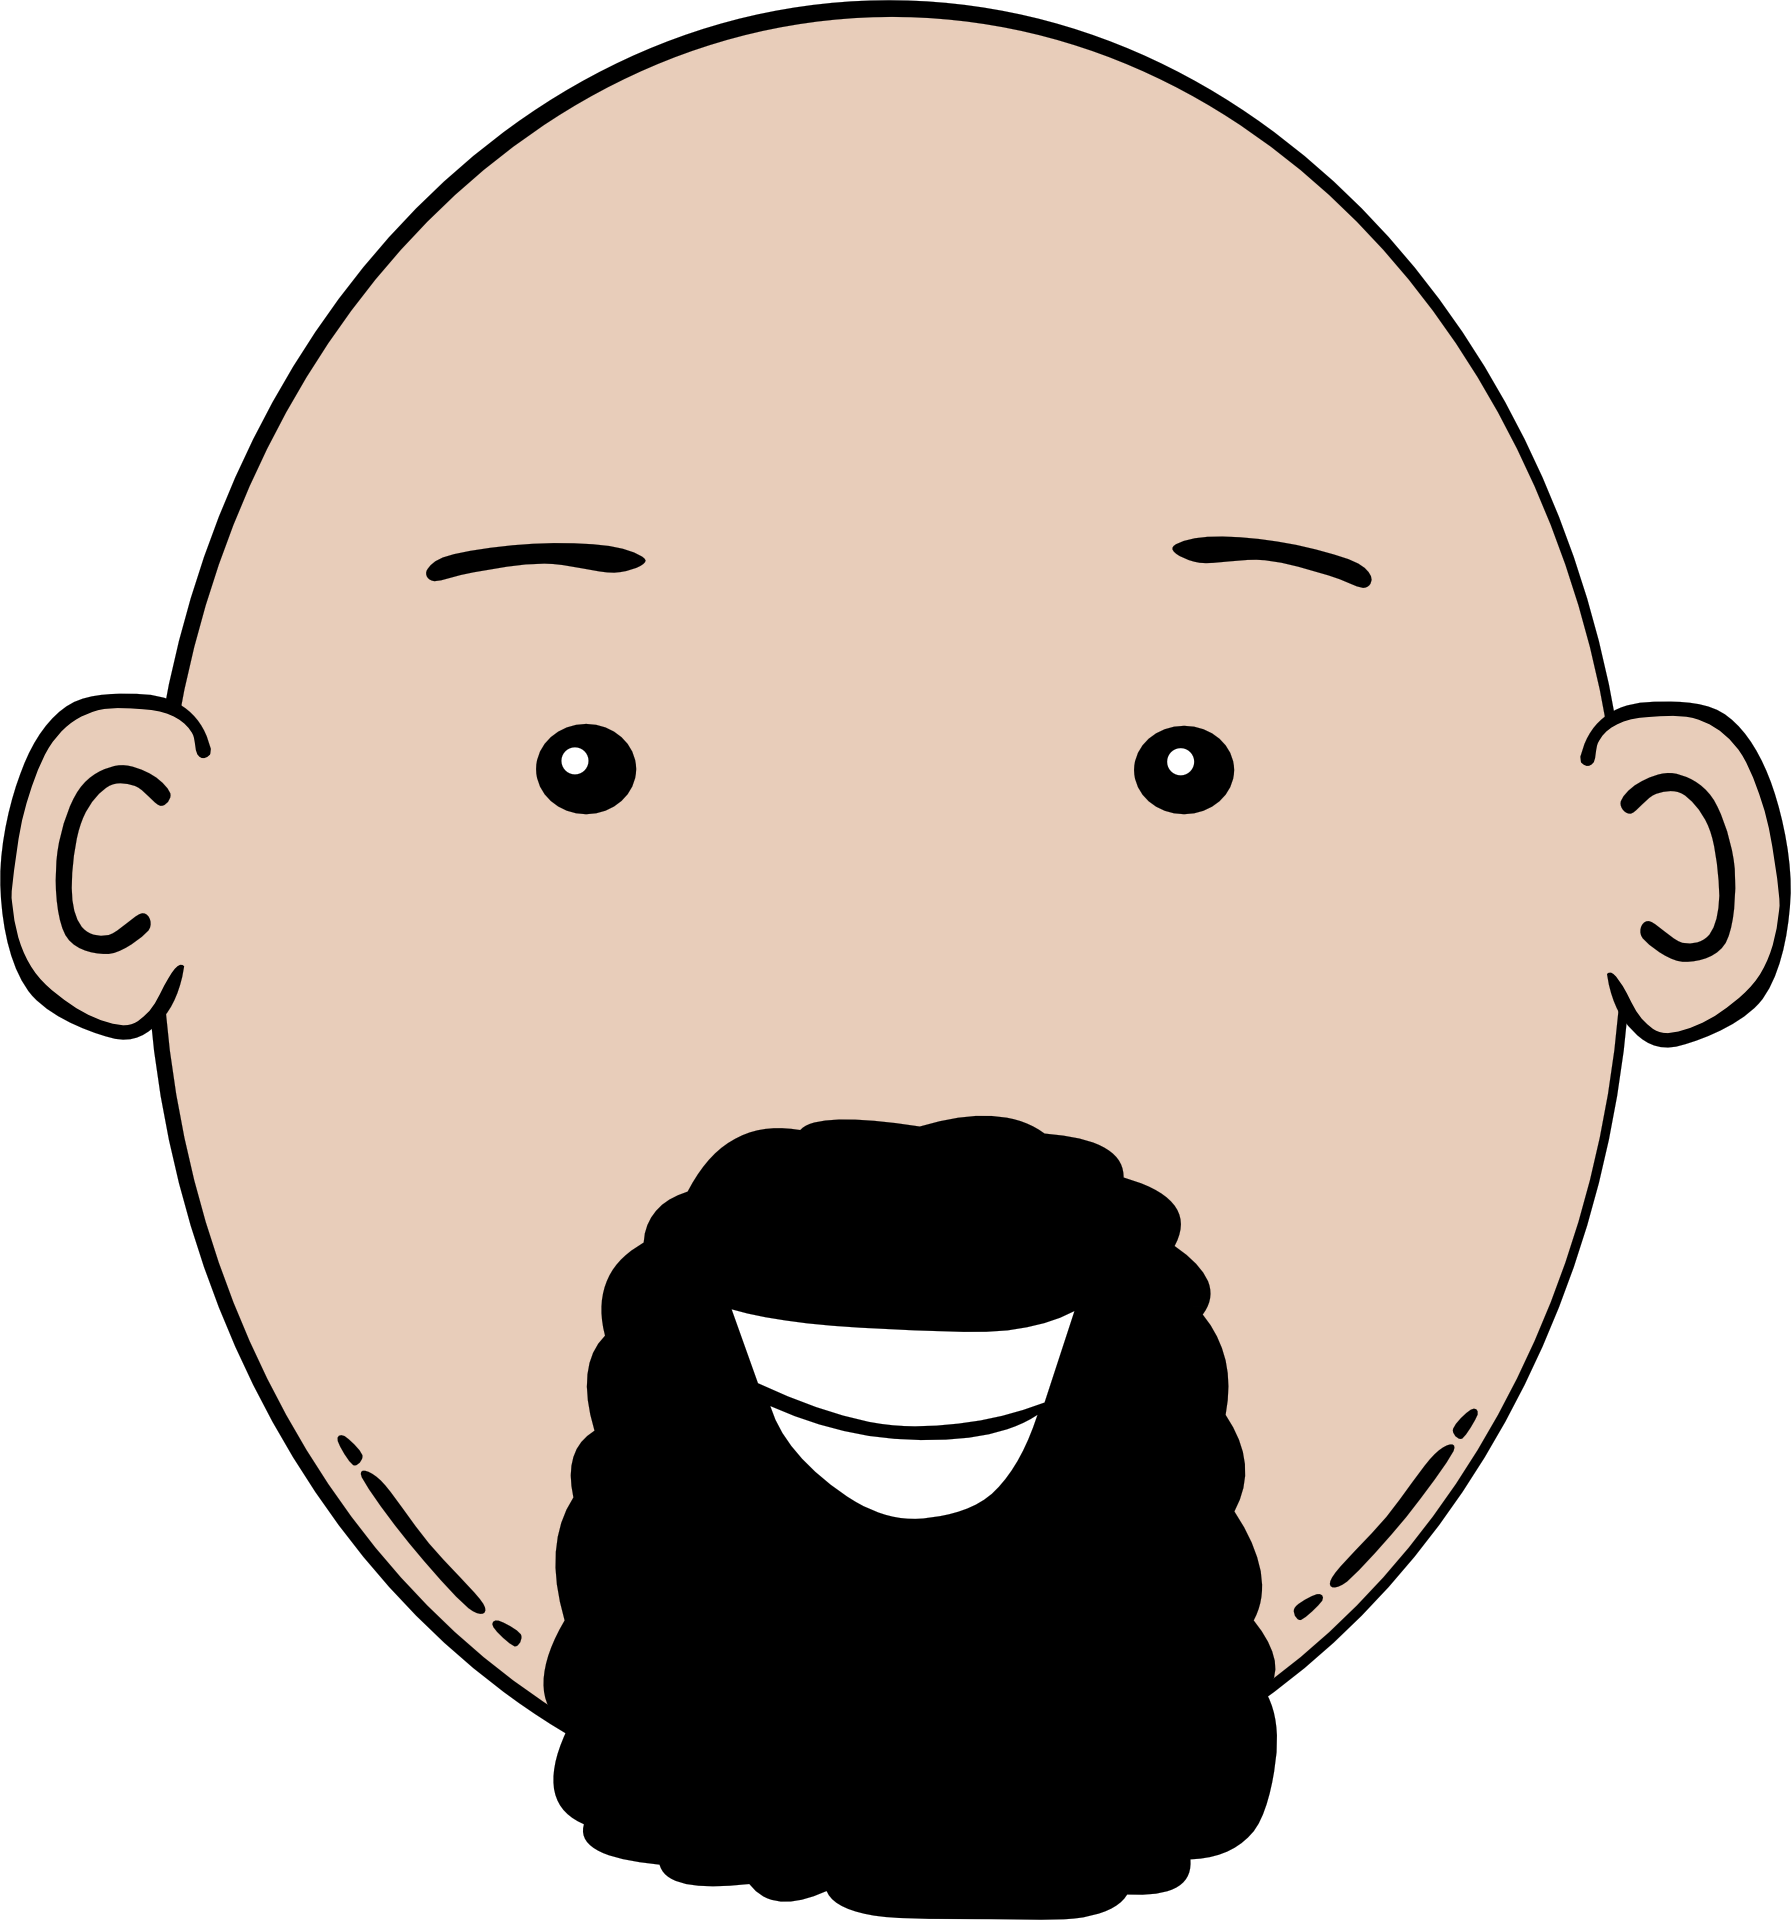 Man Face Cartoon Clip Art.